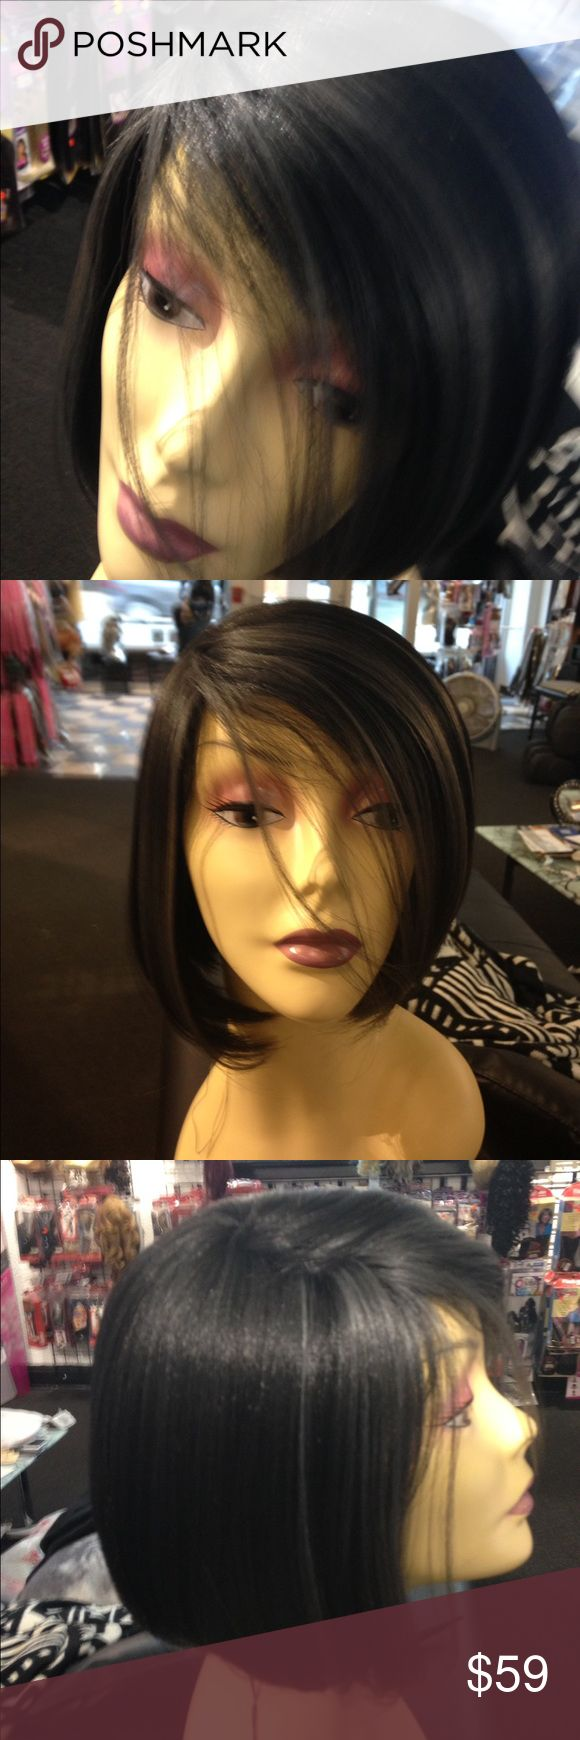 #Ombre #Wig Tess #Milwaukee heat ok adjustable This is a black bob with a streak on each side in front of grey it's super cute super trendy Tess Wigs Milwaukee all my wigs are new sold from my real wig shops in the USA 5 star posher 5 star reviews Accessories Hair Accessories